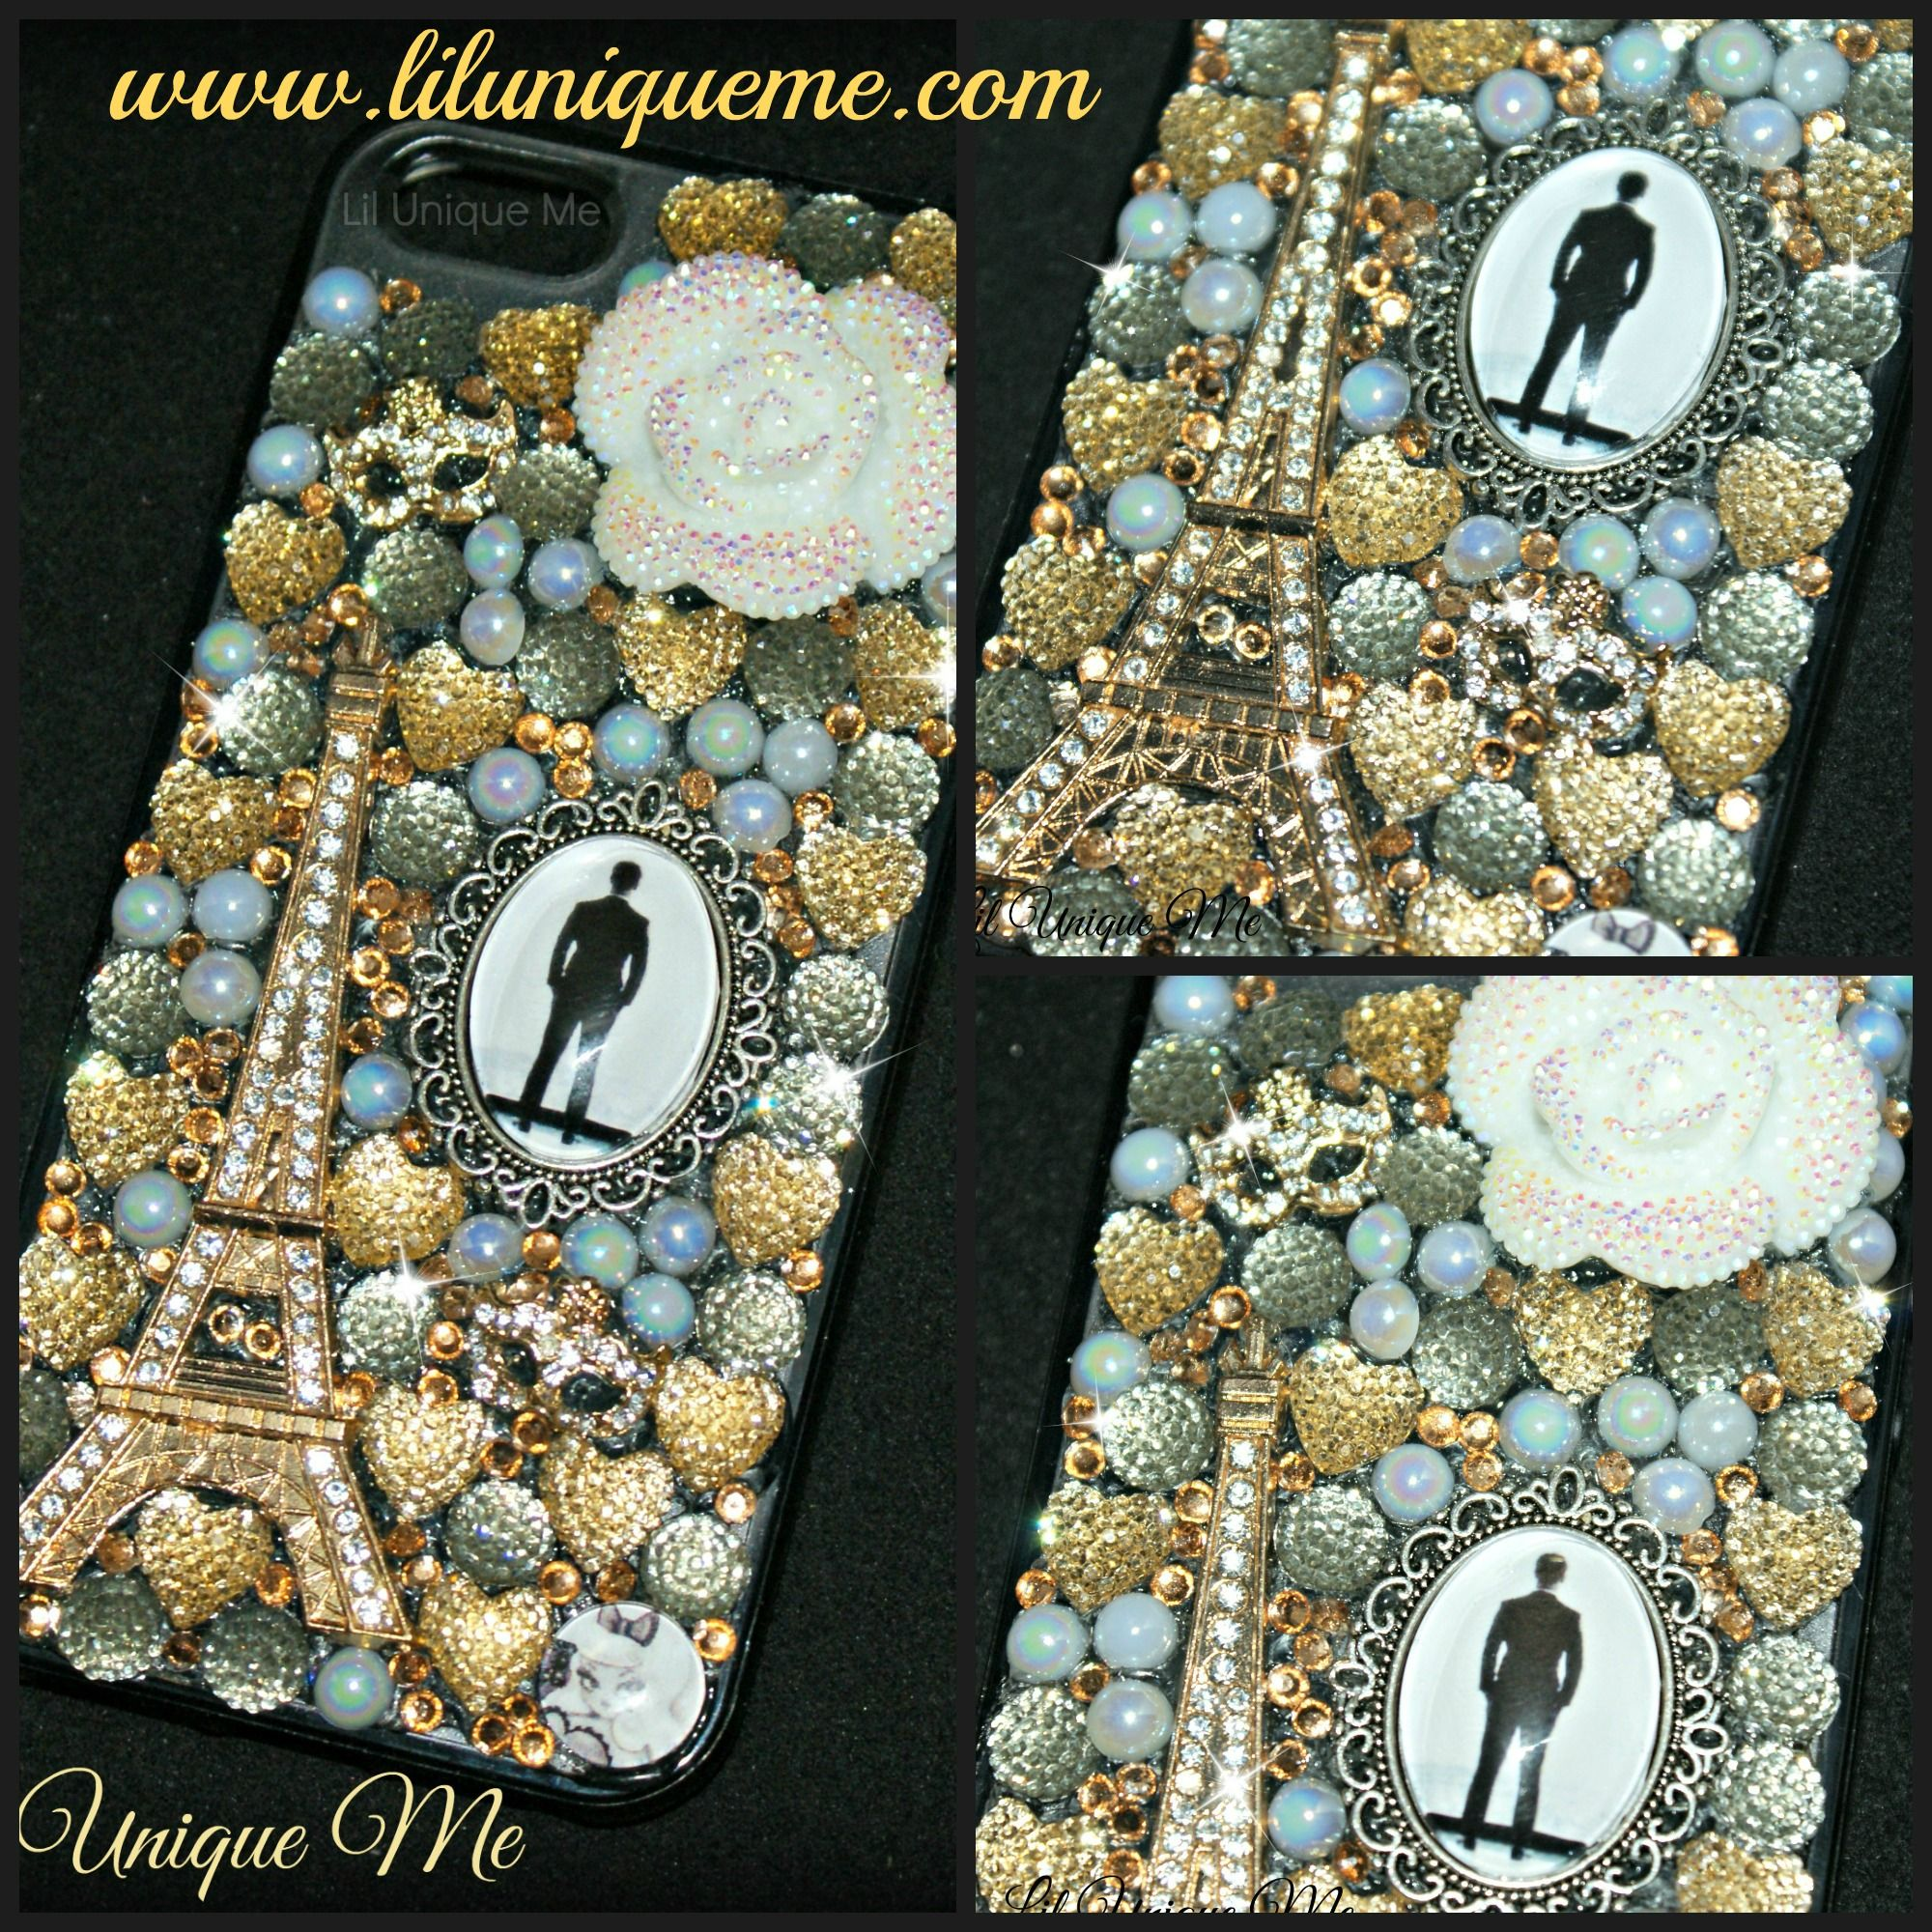 #fsog #fiftyshades #blingcase #blingphonecase #phonecase #gold #wedding #mrgrey buy yours at www.liluniqueme.co.uk